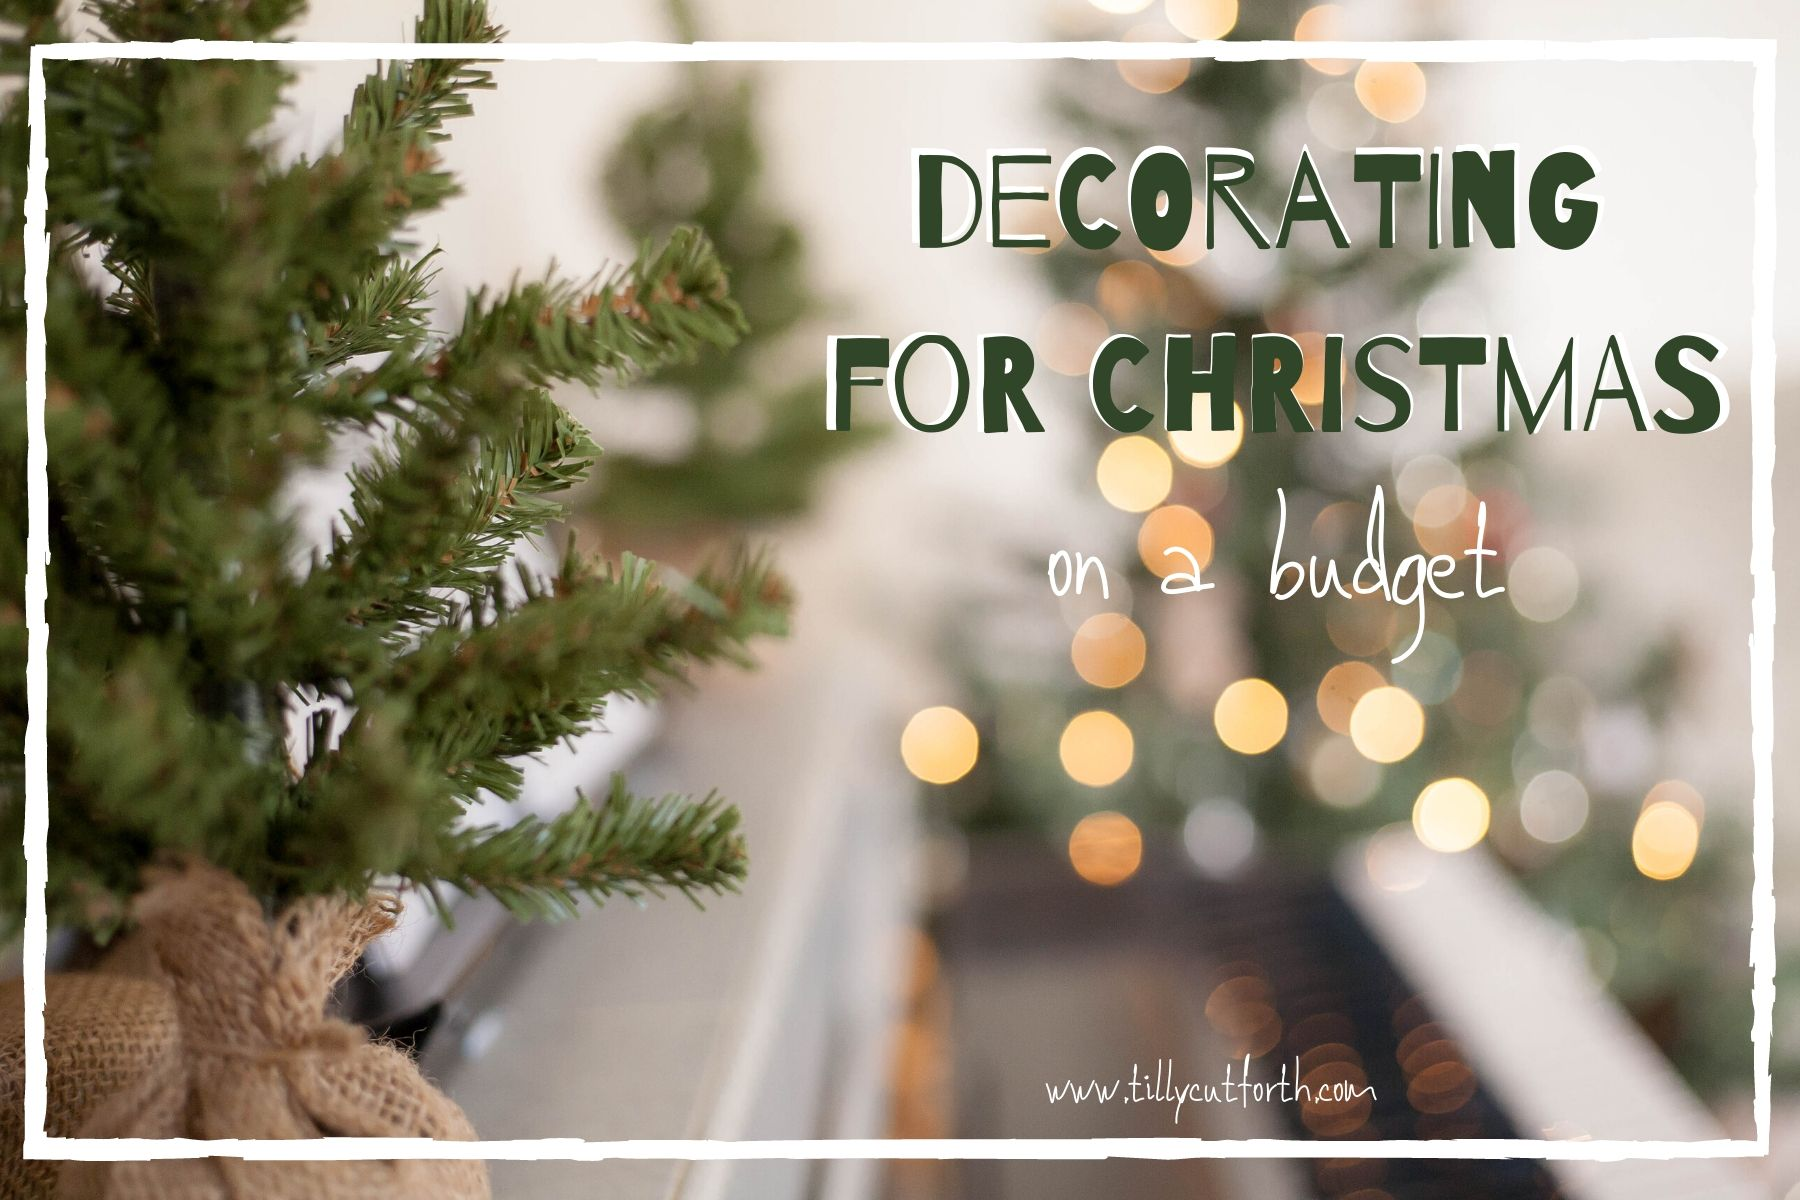 Christmas Decorations on a Budget